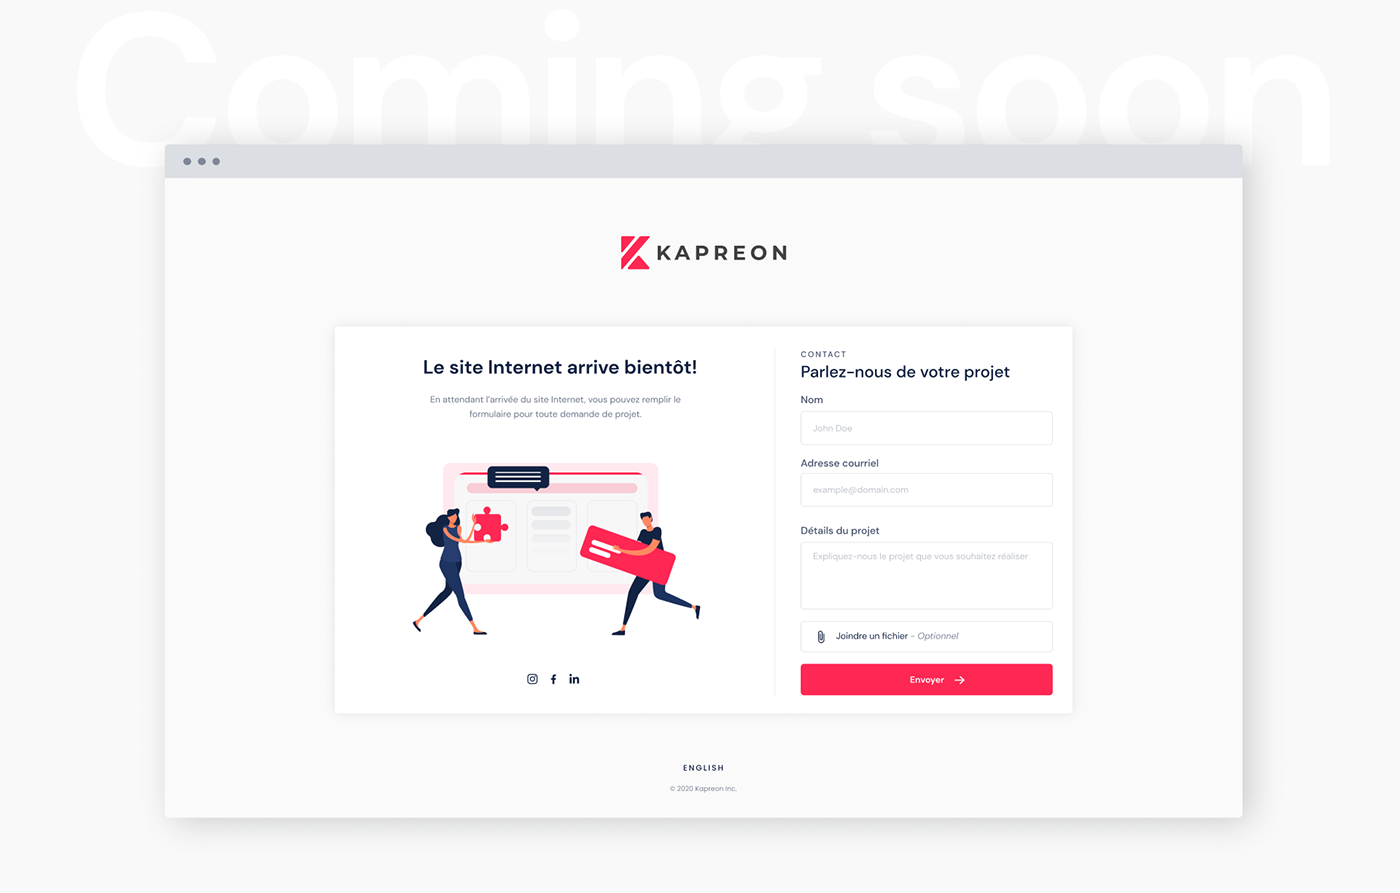 Kapreon landing page for coming soon.